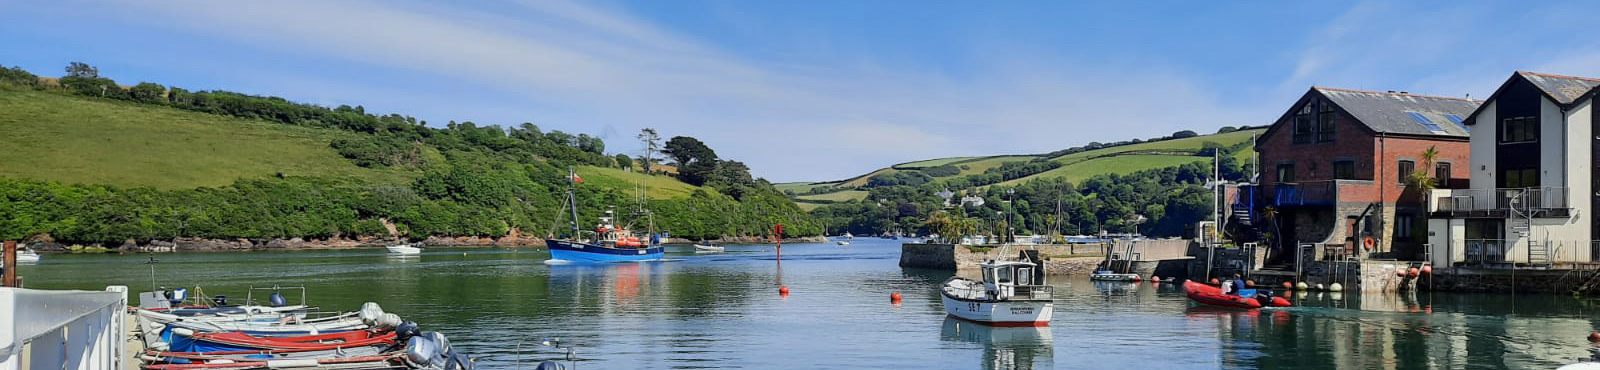 View from the Crab Shed, Salcombe